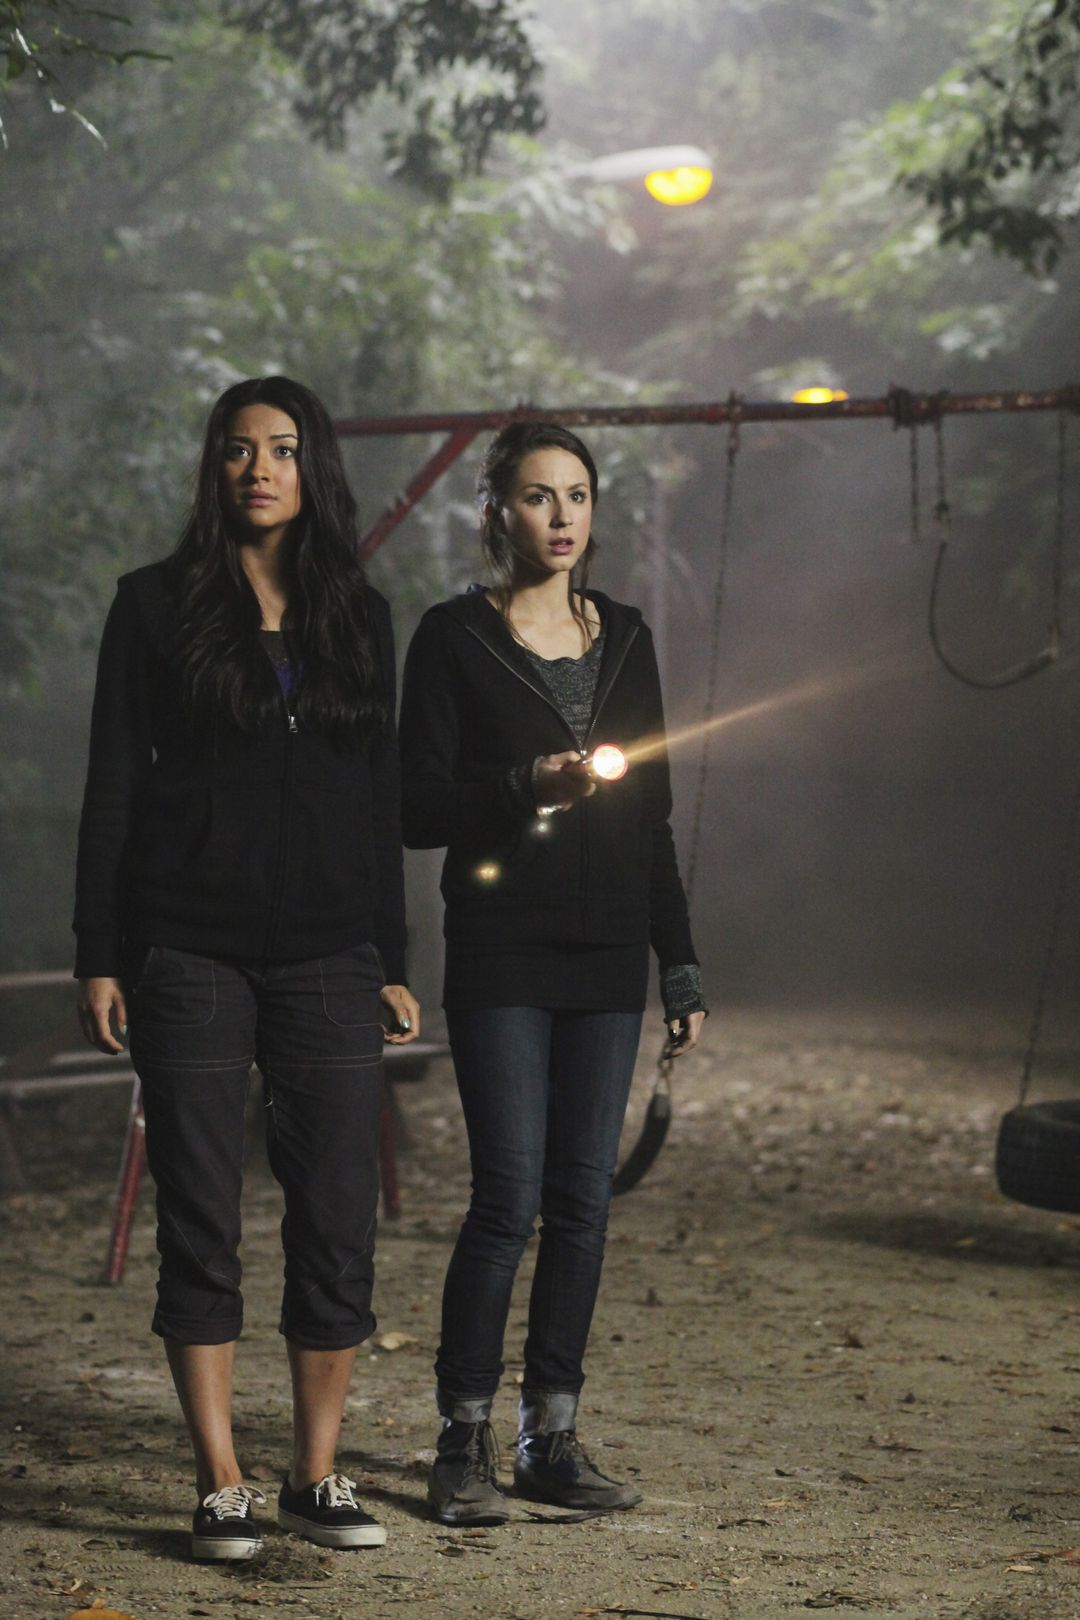 Emily Fields and Spencer Hastings Pretty Little Liars Season 1 Episode 10 Keep Your Friends Close